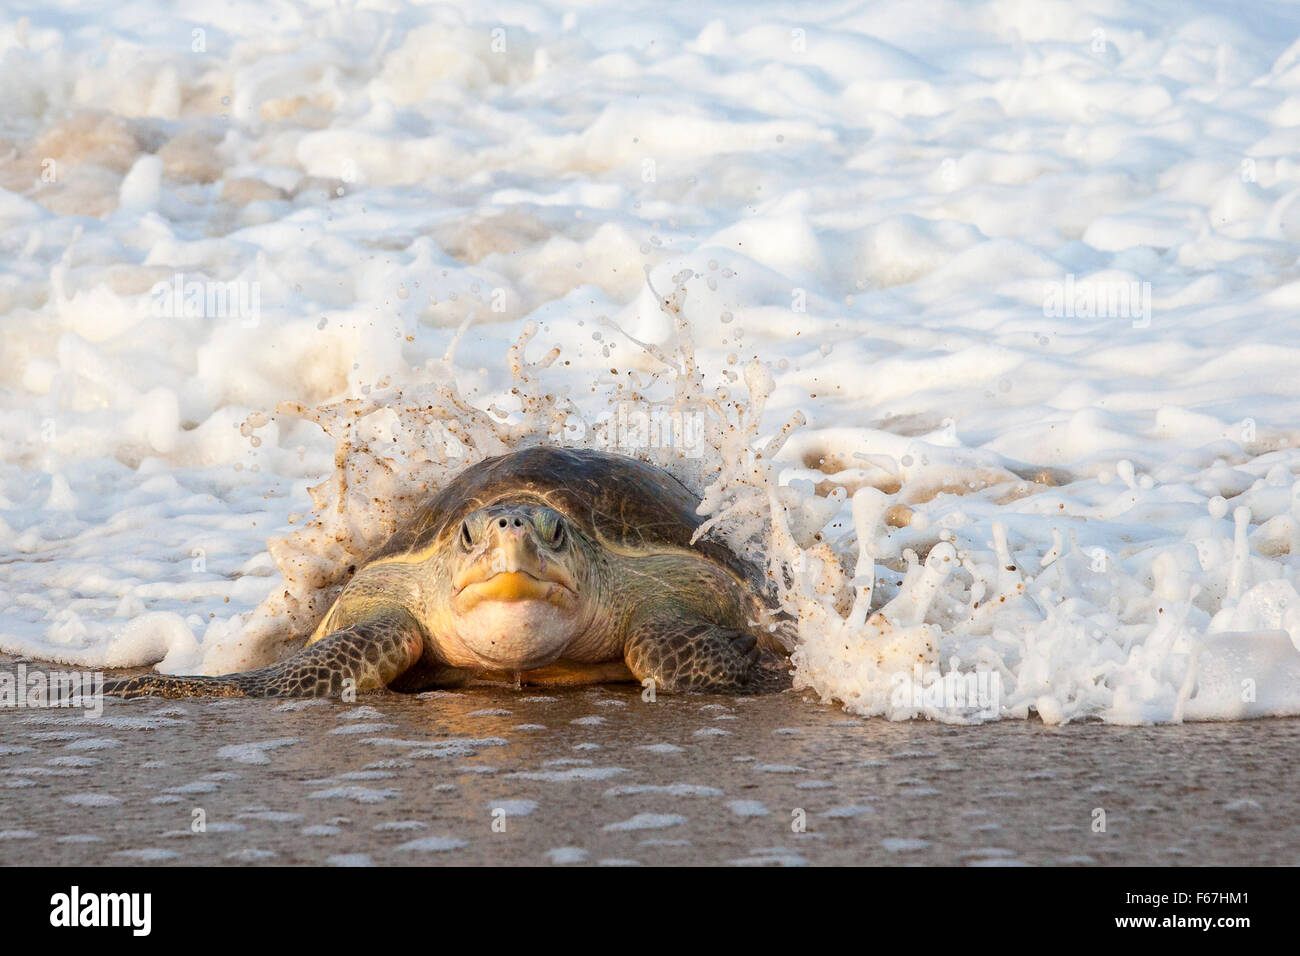 Wave breaks over an adult Olive Ridley turtle crawling ashore to lay eggs on the beach at Ixtapilla, Michoacan, - Stock Image